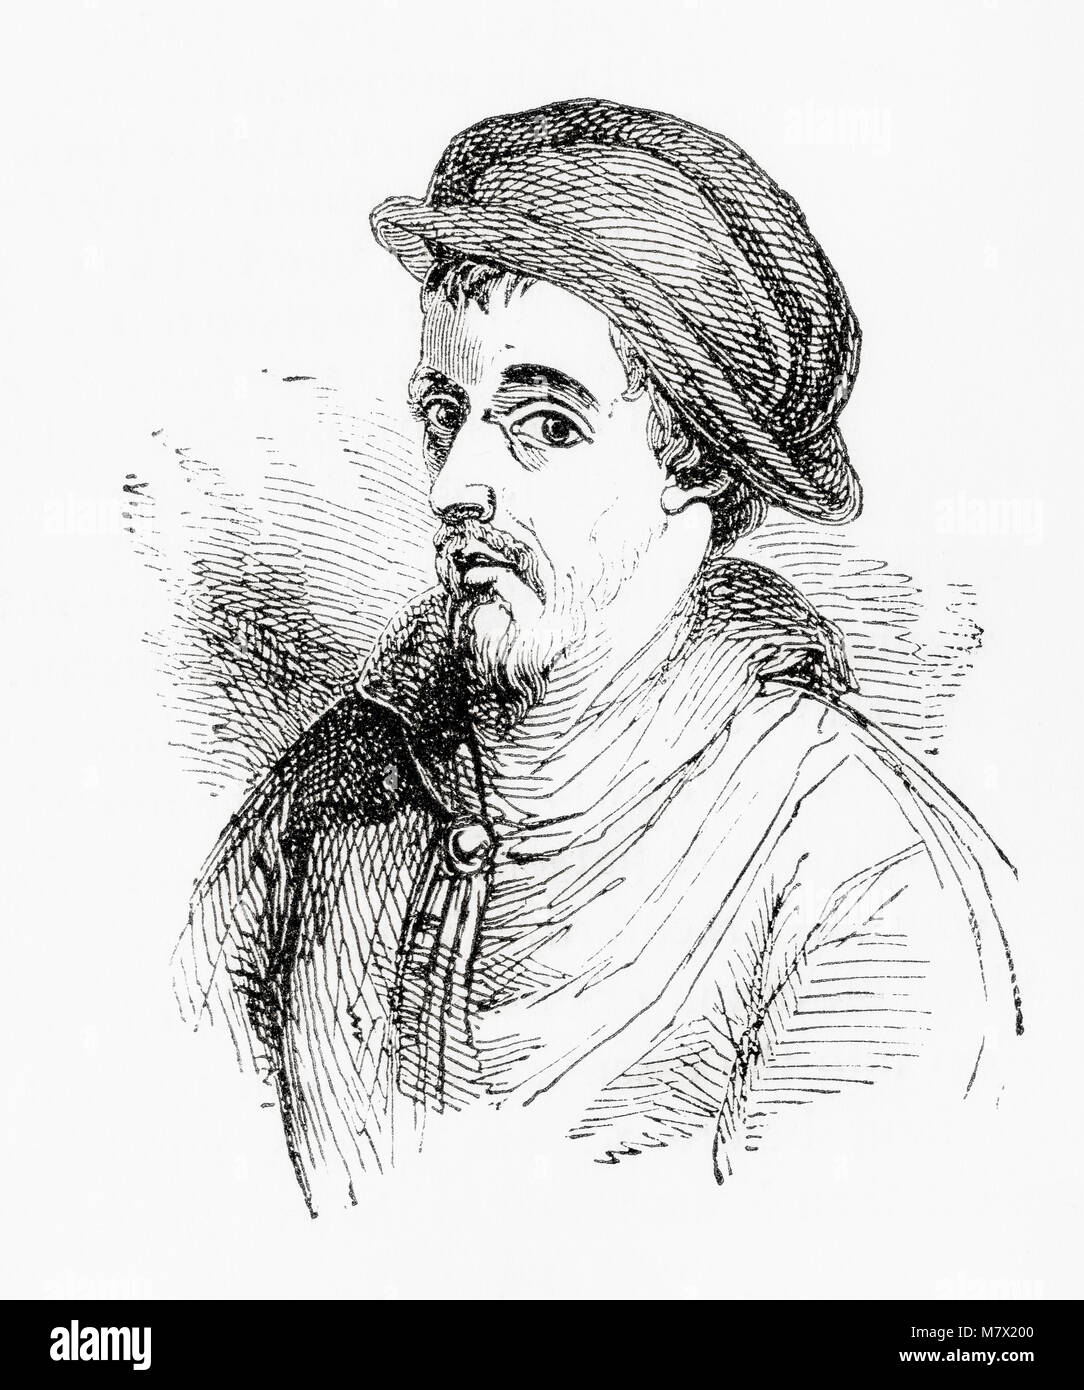 John Howard, 1st Duke of Norfolk, c. 1425 – 1485.  English nobleman, soldier, politician.  From Old England: A Pictorial - Stock Image